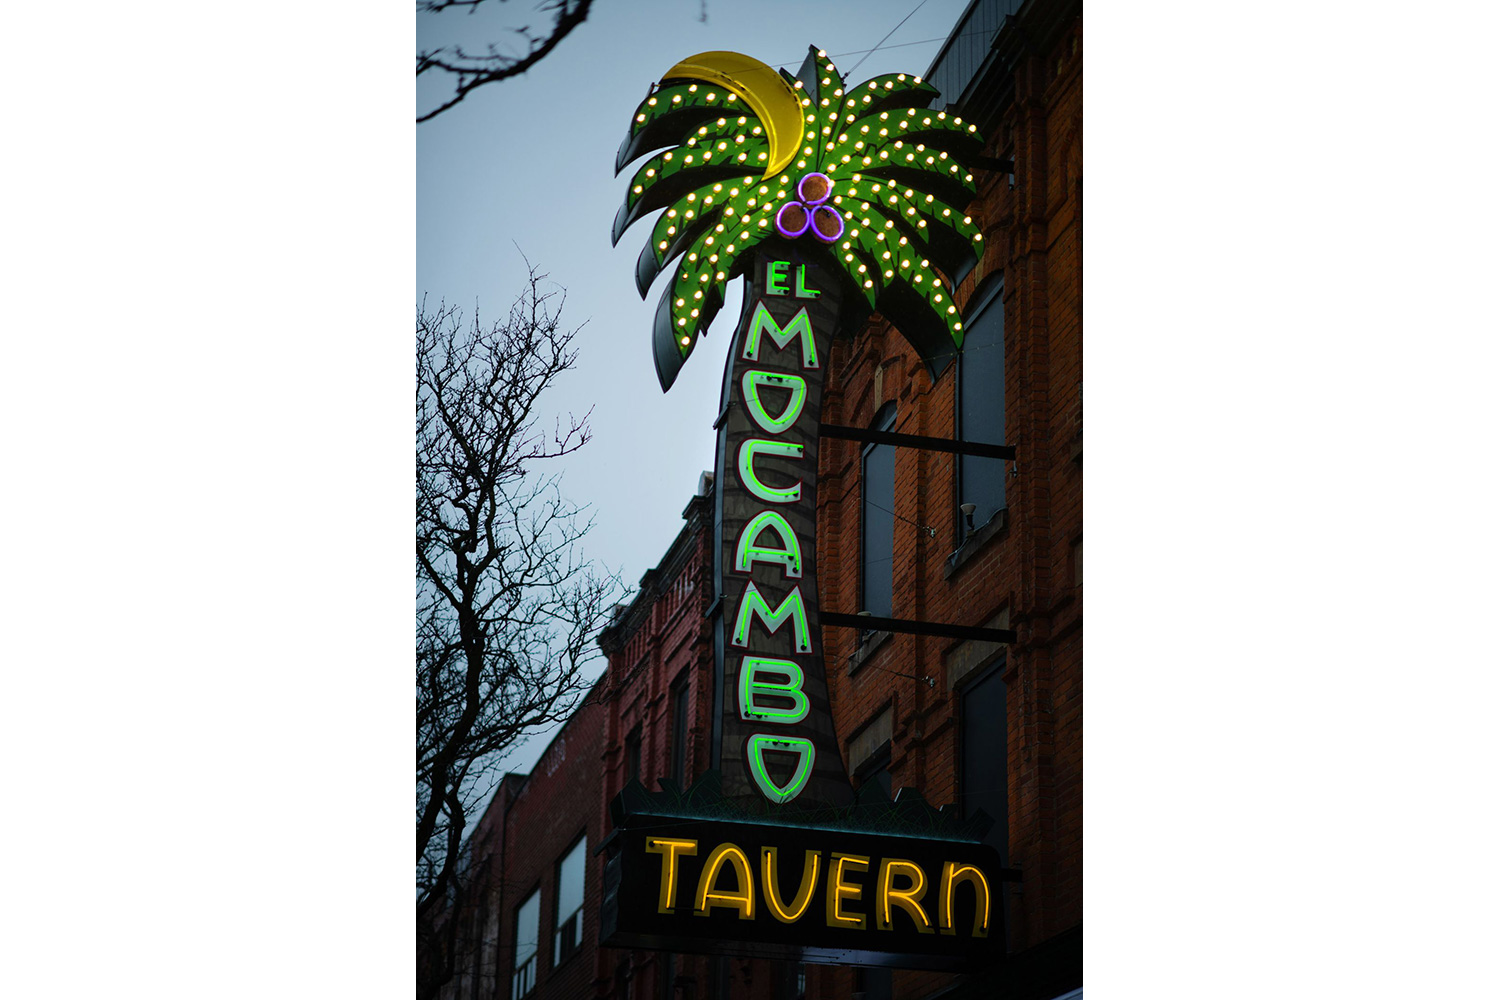 Toronto's legendary El Mocambo was acquired in 2014 by Michael Wekerle, who commissioned WSDG to design and co-supervise the renovation of the club into a live performance/recording and streaming space. Street sign.